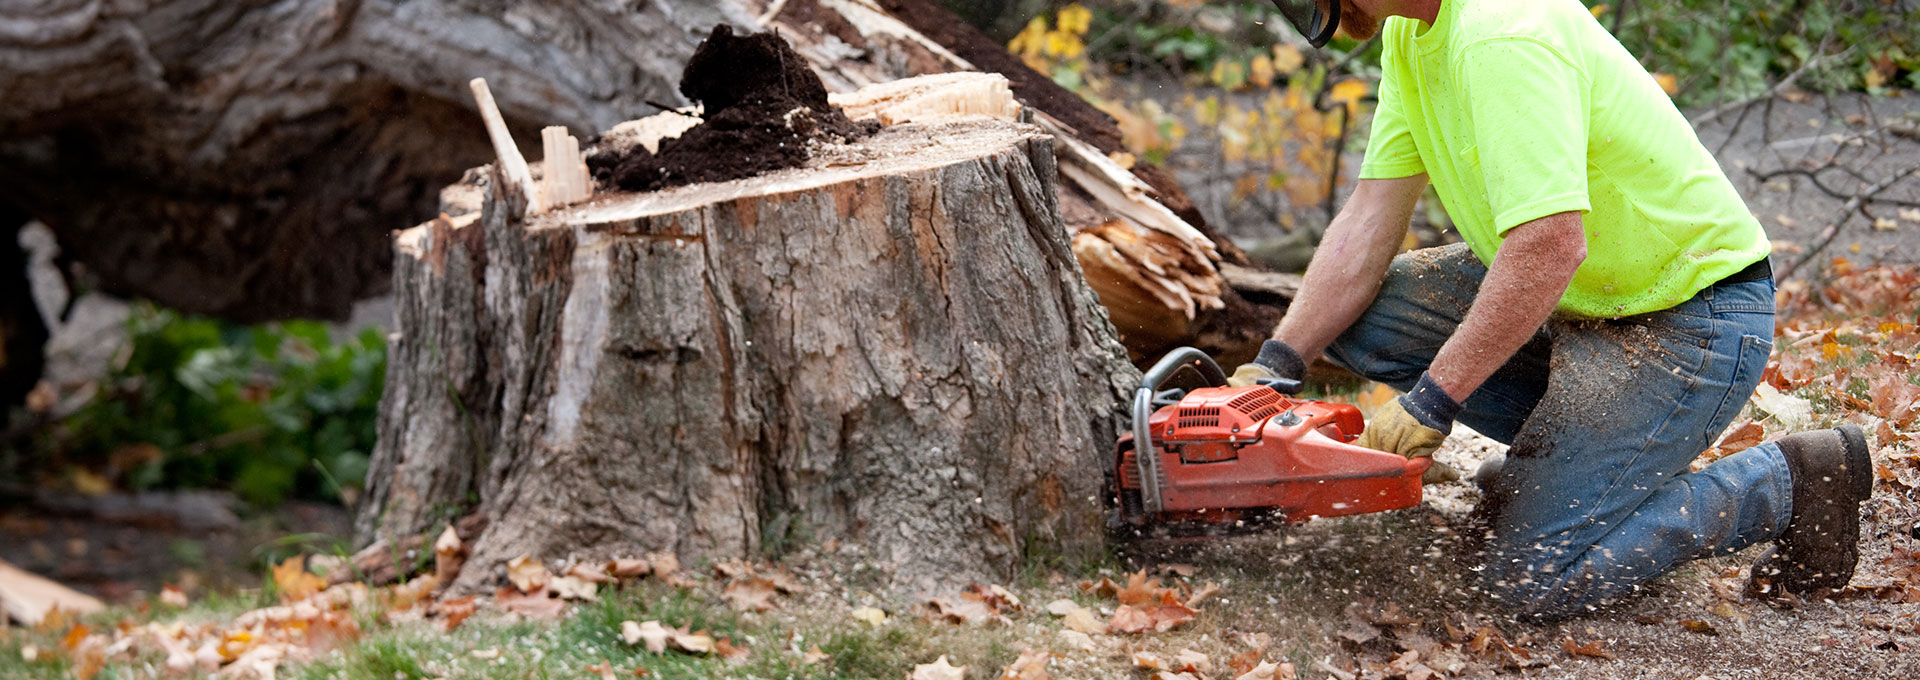 chips tree service inc - newtown square firewood for sale